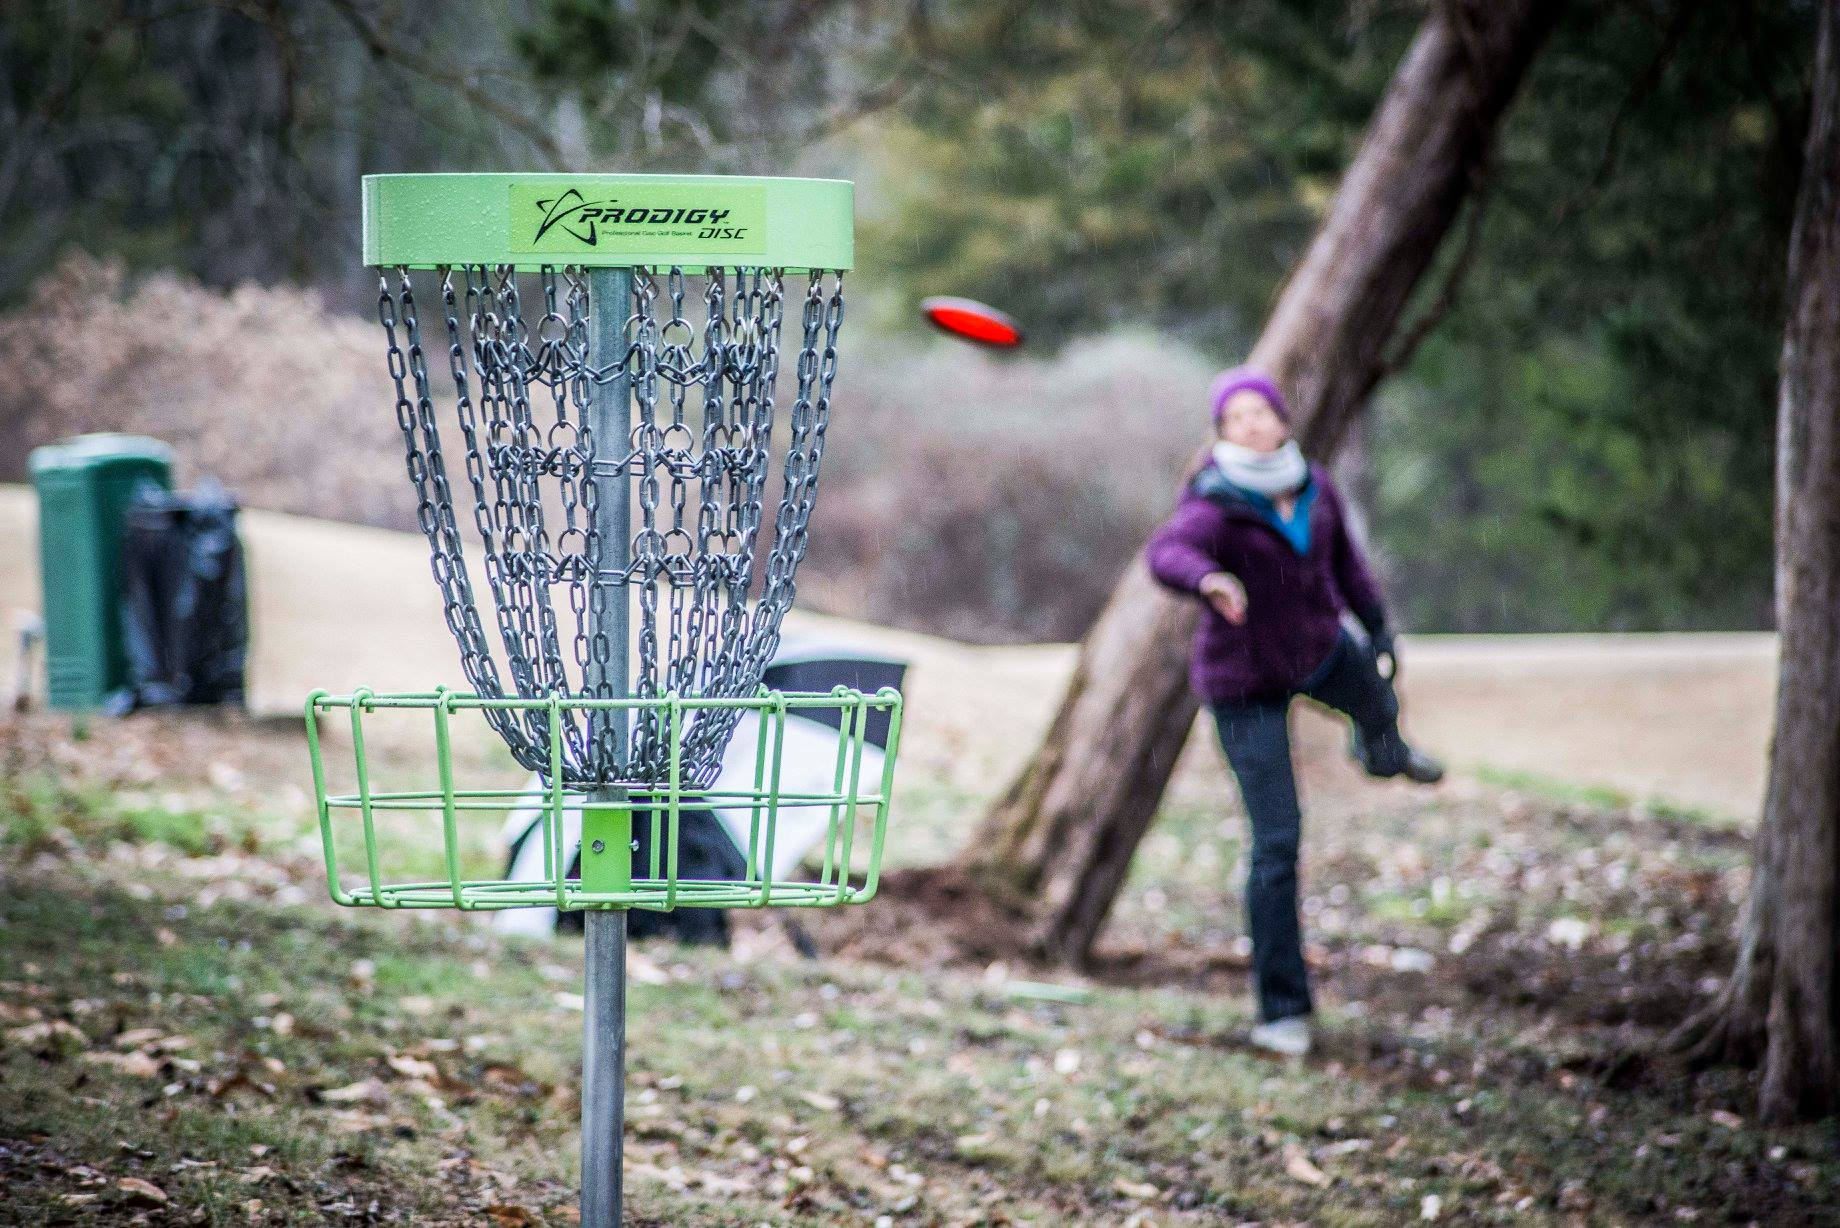 TITAN DGC AT NASHBORO